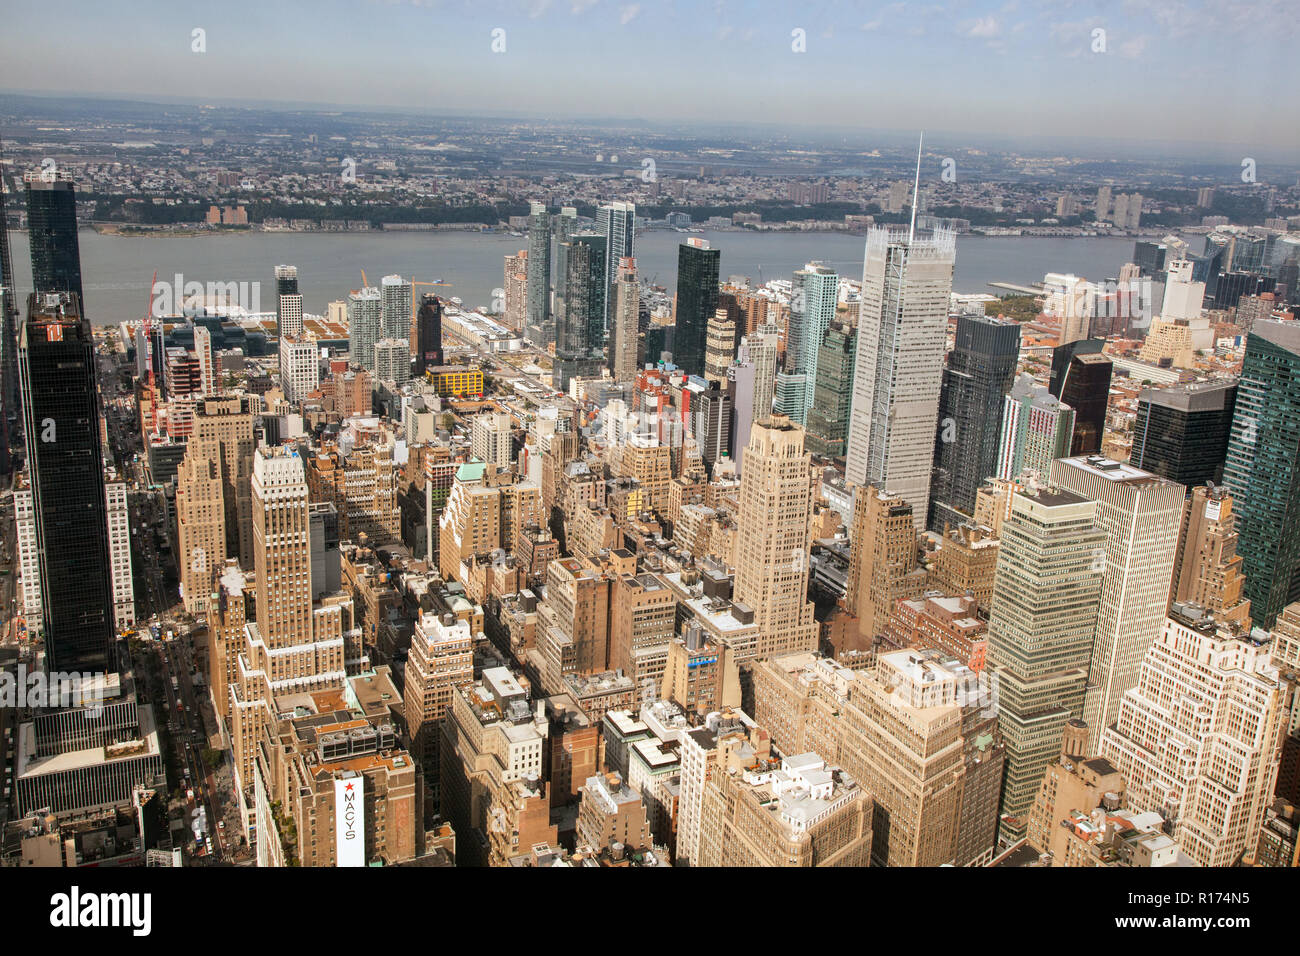 View from the Empire State Building, Manhattan, New York City, United States of America. Stock Photo